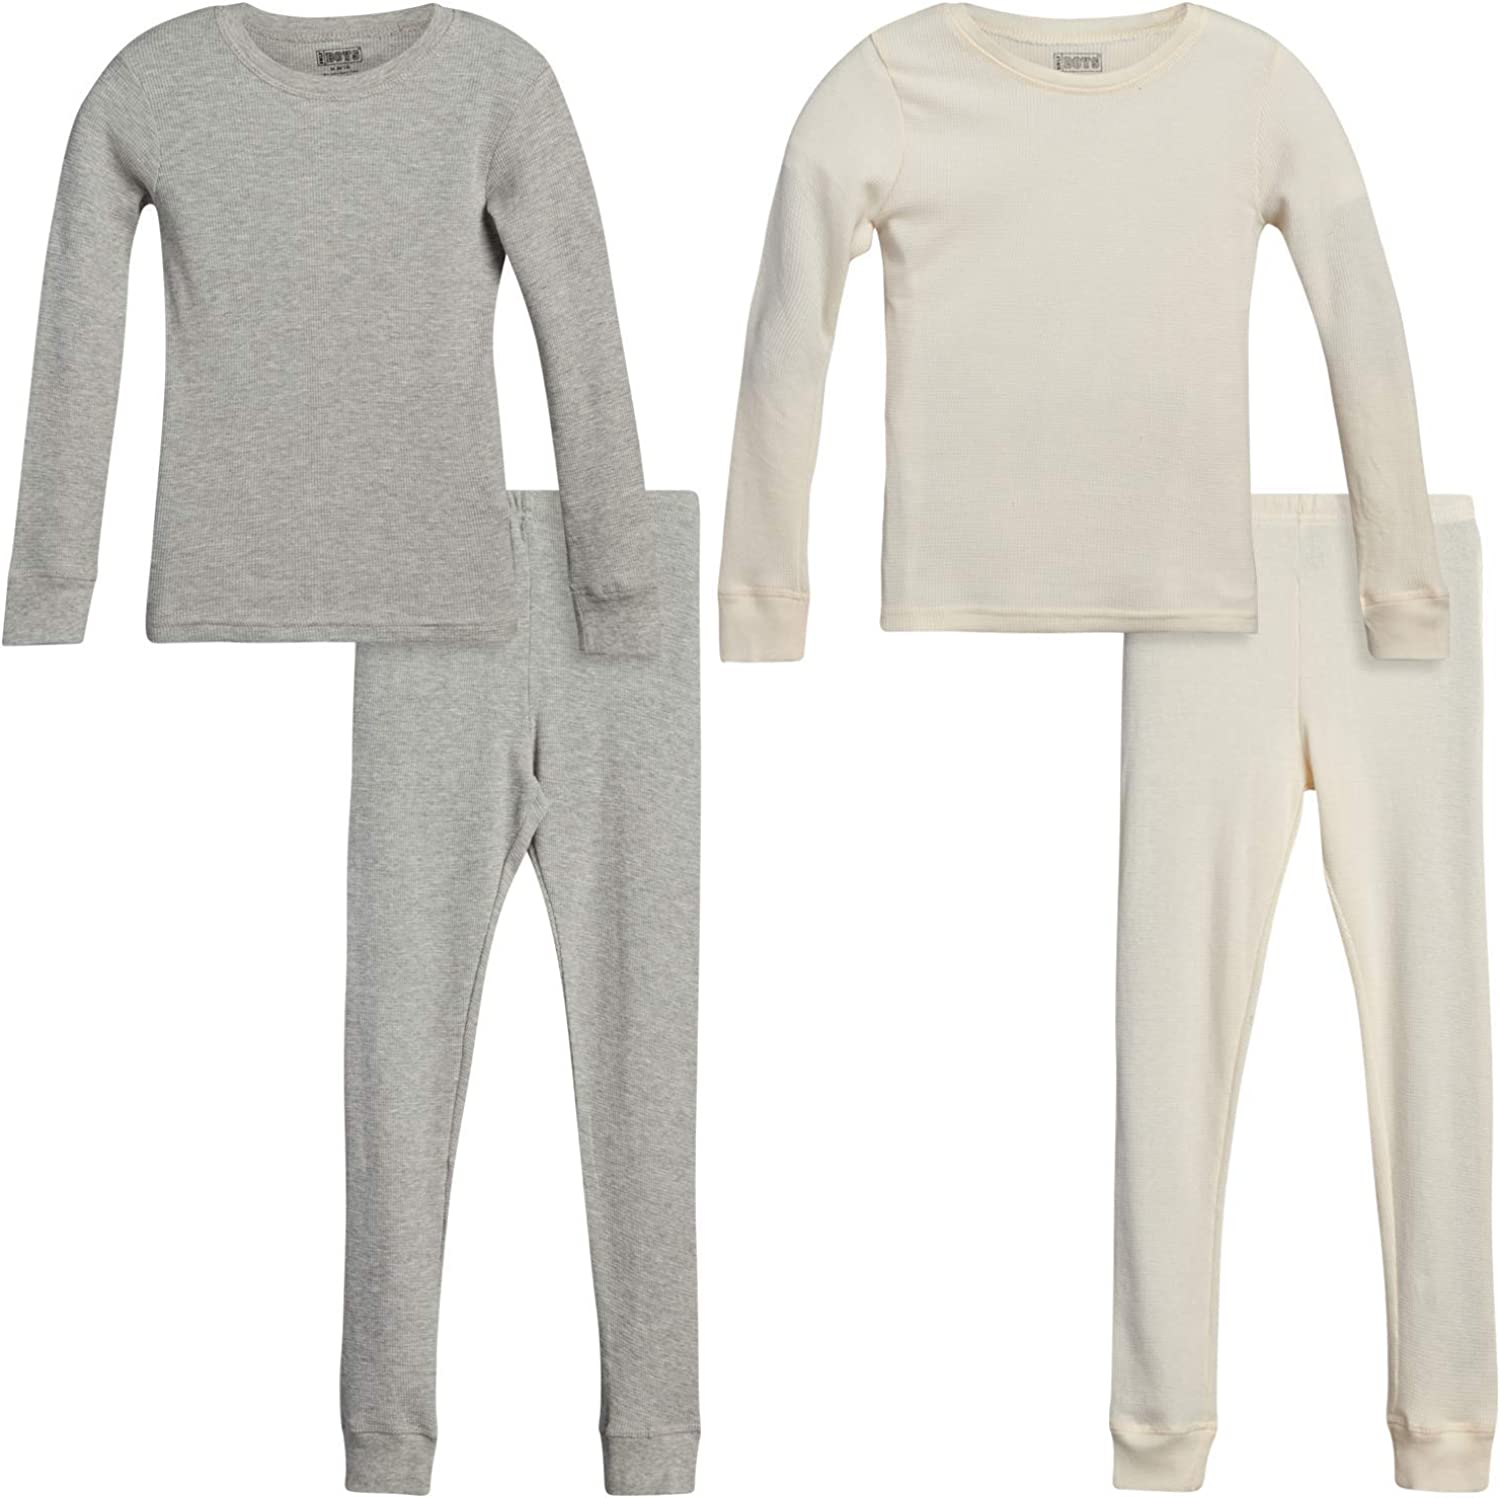 Only Boys Thermal 2021 spring and summer Max 47% OFF new Underwear Set Winter Base-Layer Lo –